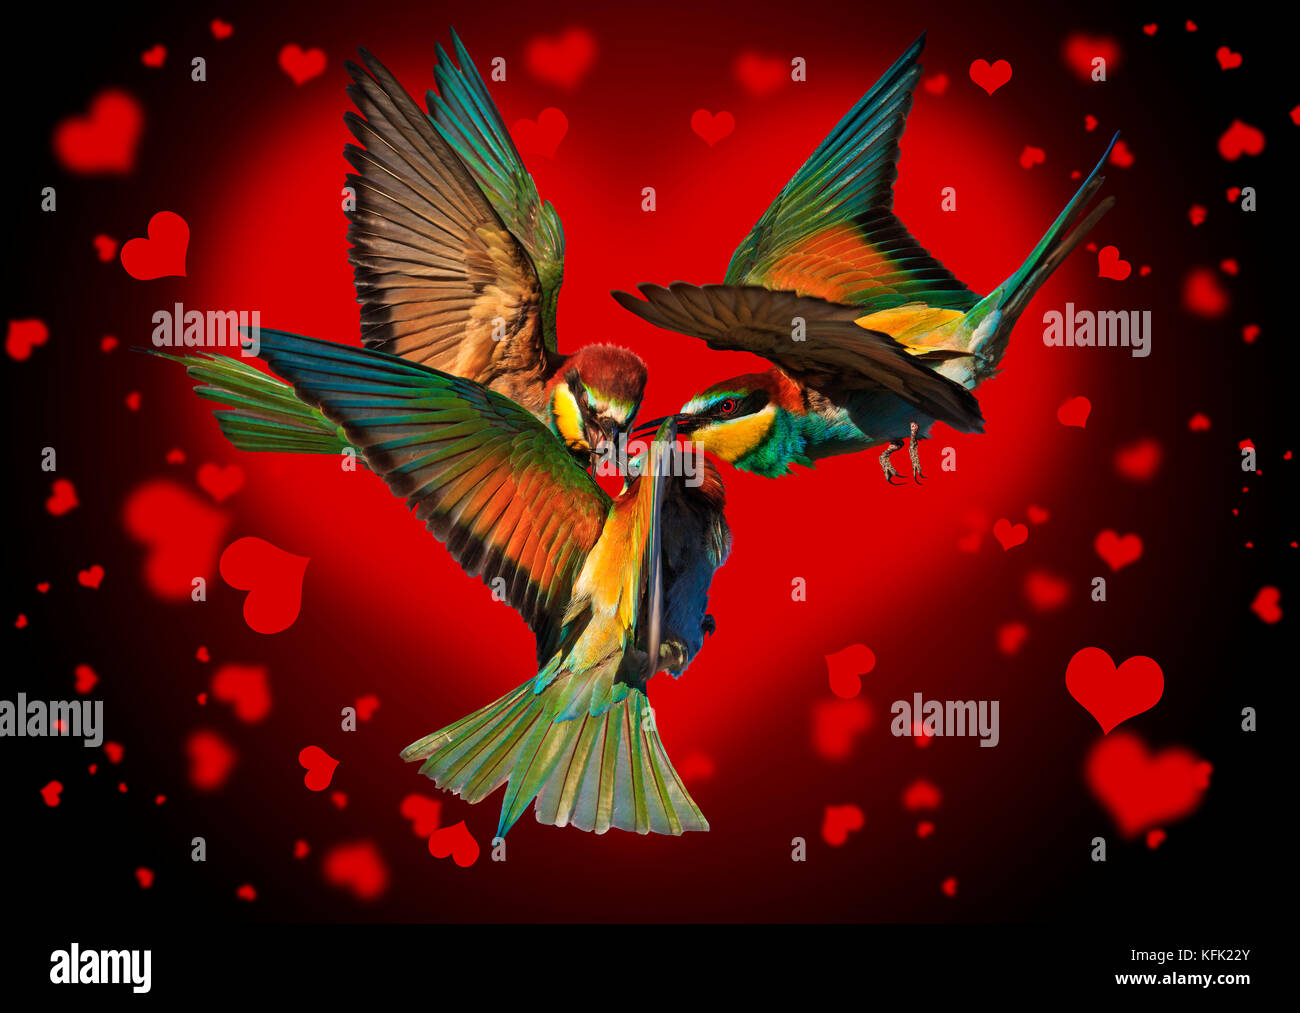 love triangle of birds fighting on the black background of the hearts - Stock Image